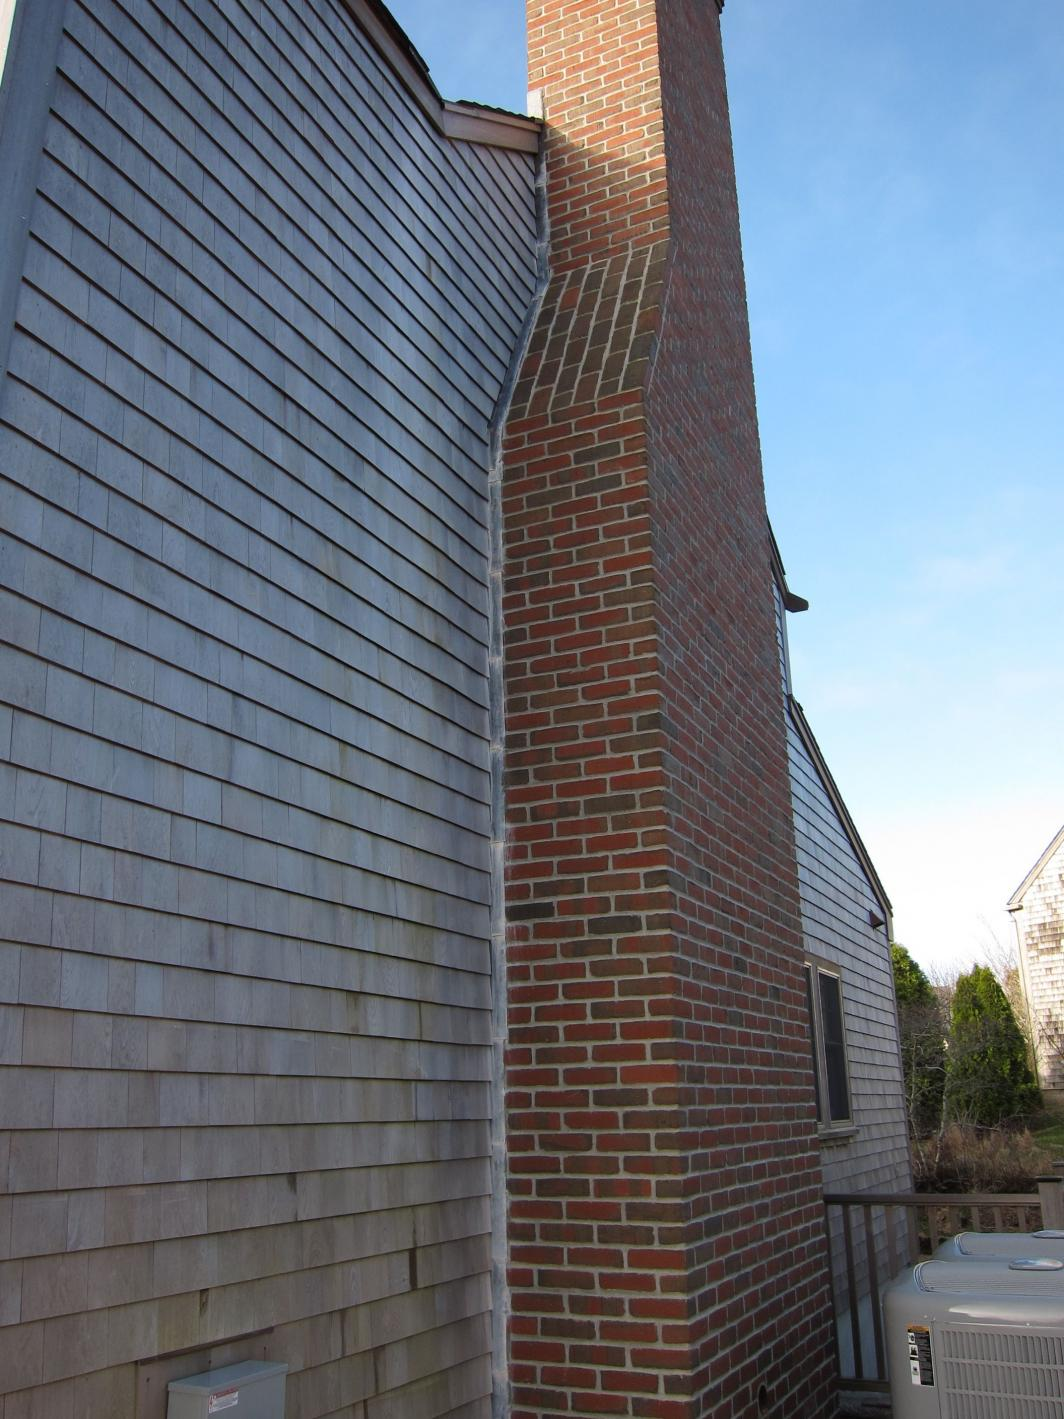 Vertical Chimney Flashing Masonry Contractor Talk